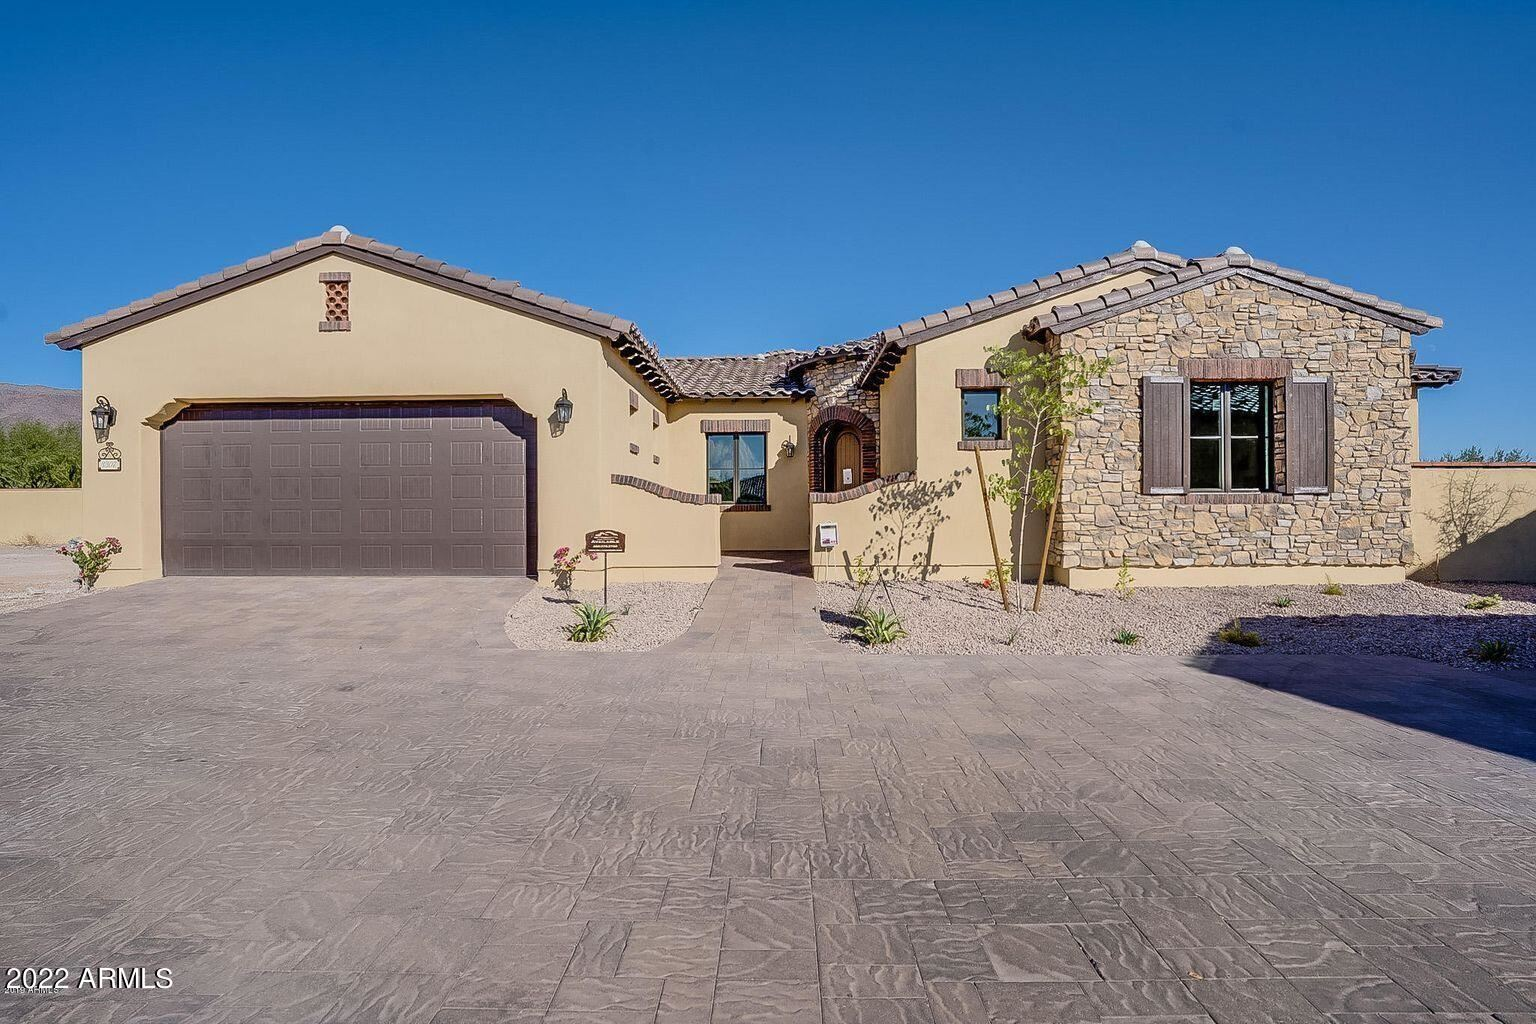 8352 E CLUB VILLAGE Drive, Gold Canyon, AZ 85118 - MLS#: 6116434